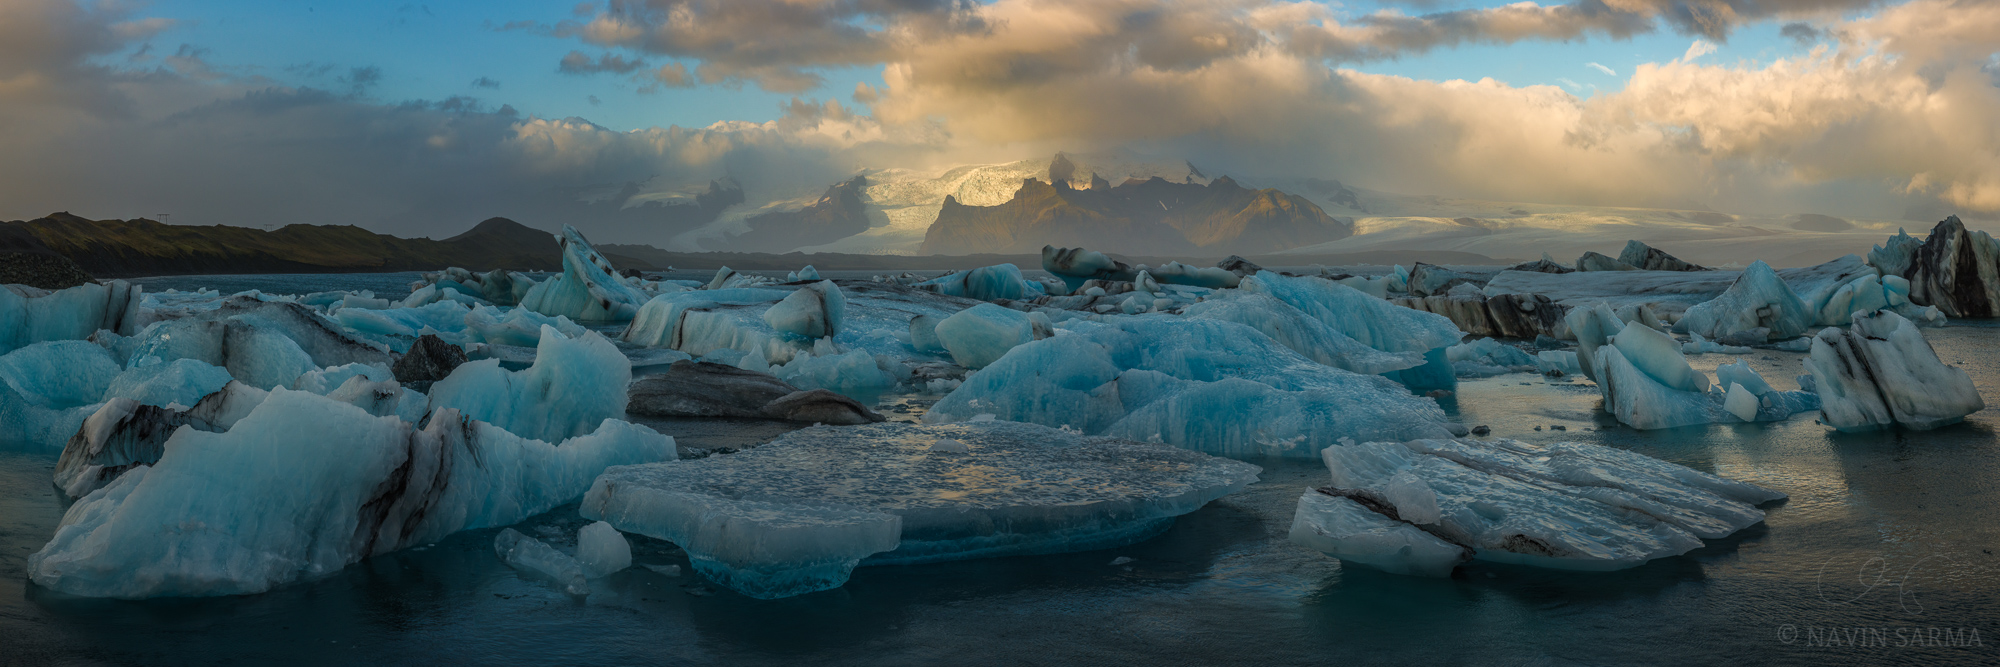 A short break between storms allows beautiful light on the Vatnajökull ice cap of iceland